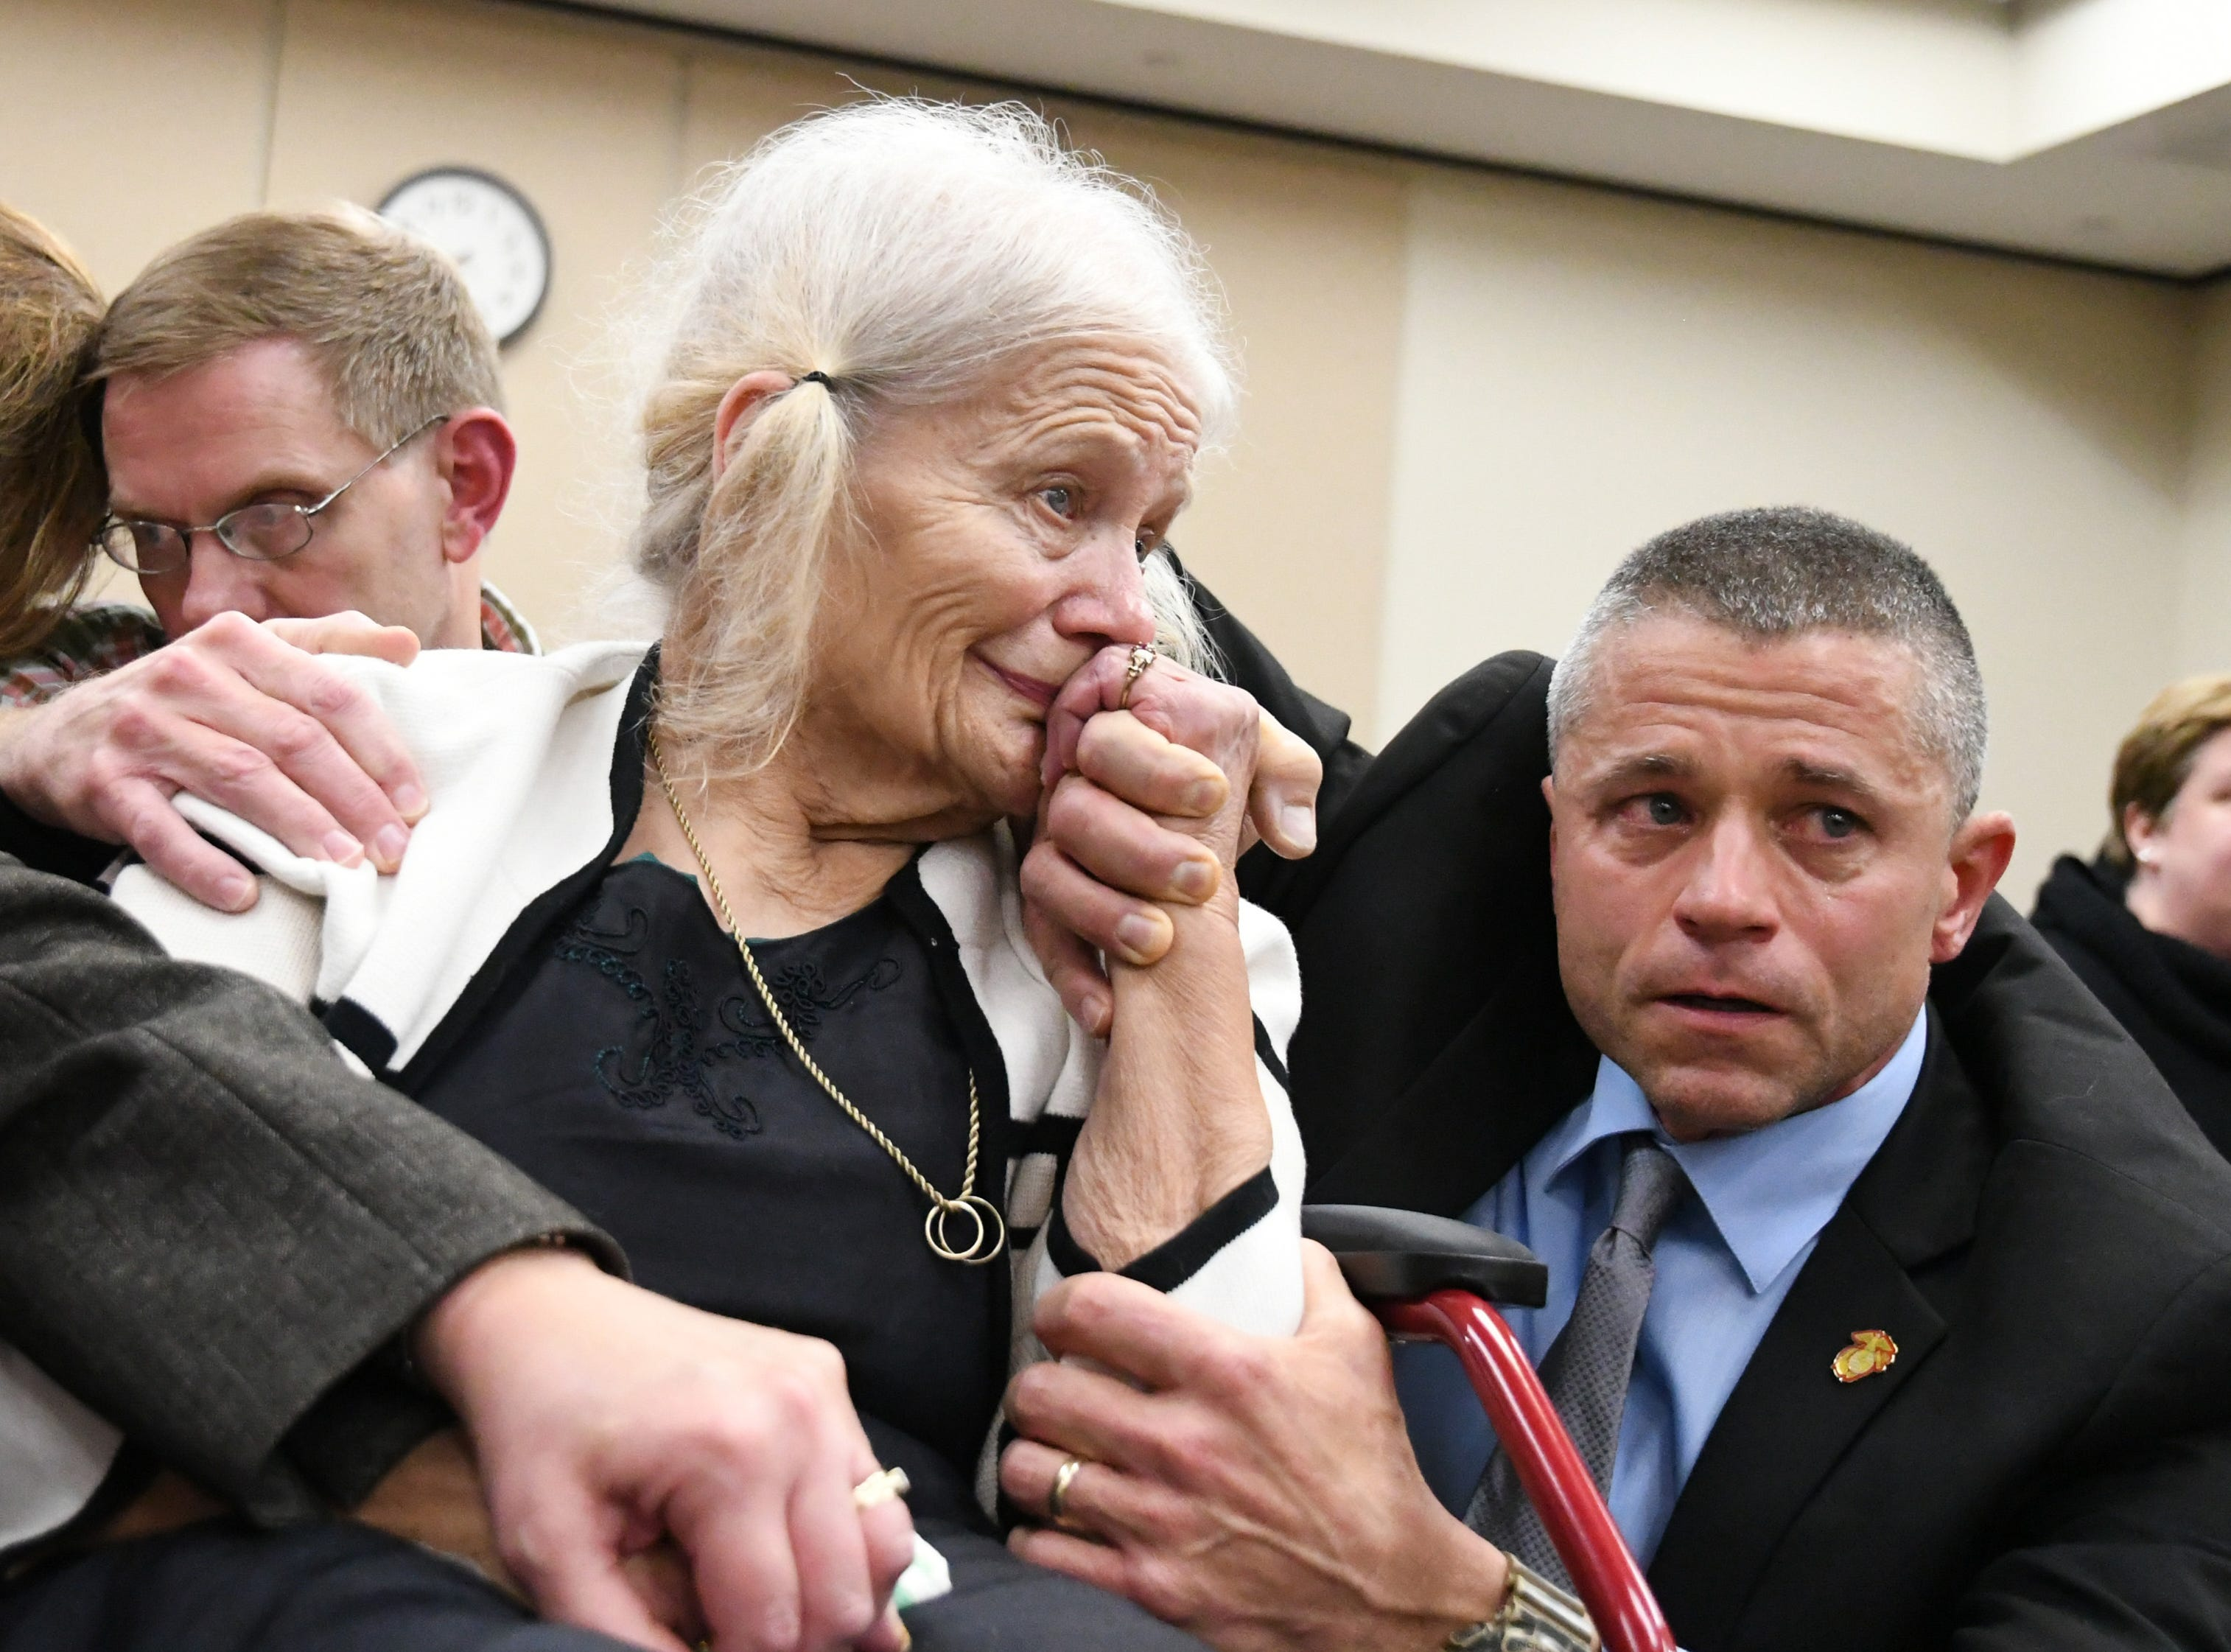 Cheryl Williams, left, mother of Mike Williams, the man who was shot and killed by his best friend, Brian Winchester 18 years ago, along side family friend Josey Visnovske, cry tears of joy for a the guilty verdicts in the trial against Denise Williams, Mike's former wife, Friday, Dec. 14, 2018. Nick Williams, brother of Mike Williams, rests his head against his wife's head while gripping on to his mother's shoulder.